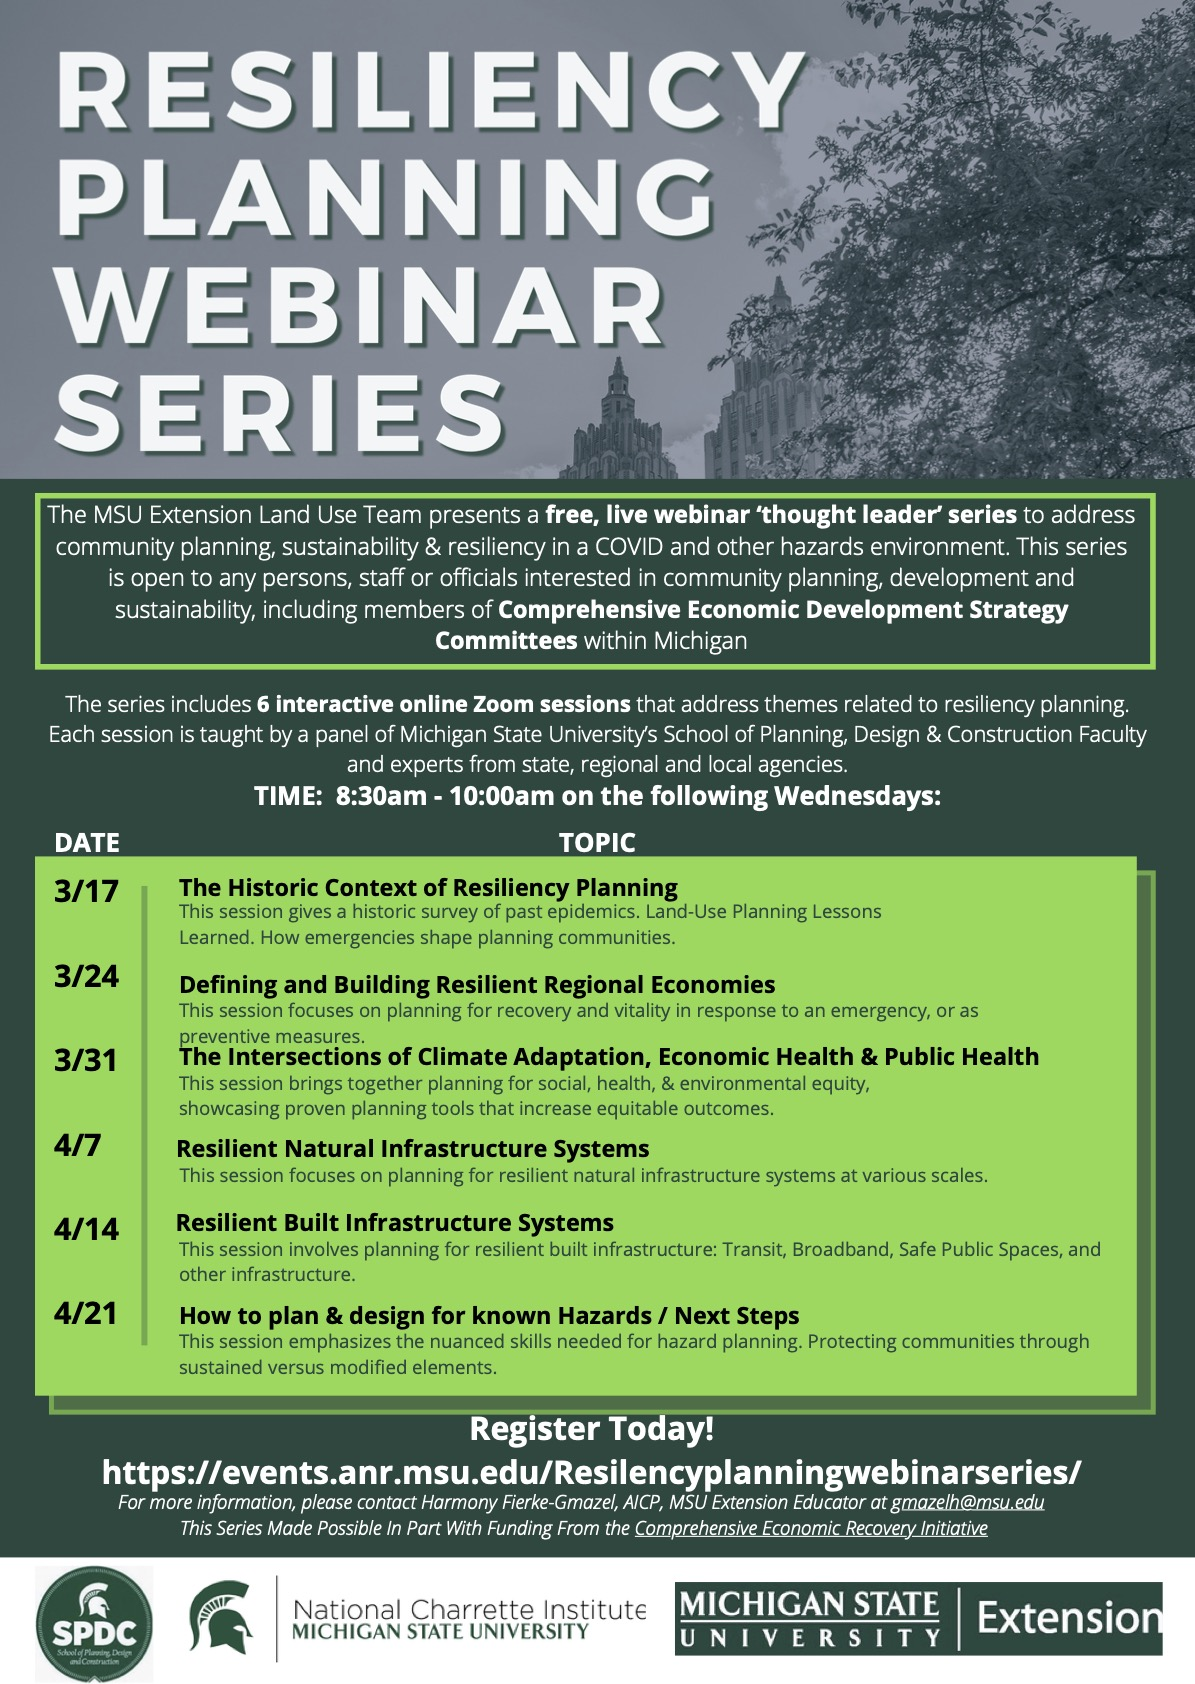 resiliency_planning_webinar_series_flyer.jpg